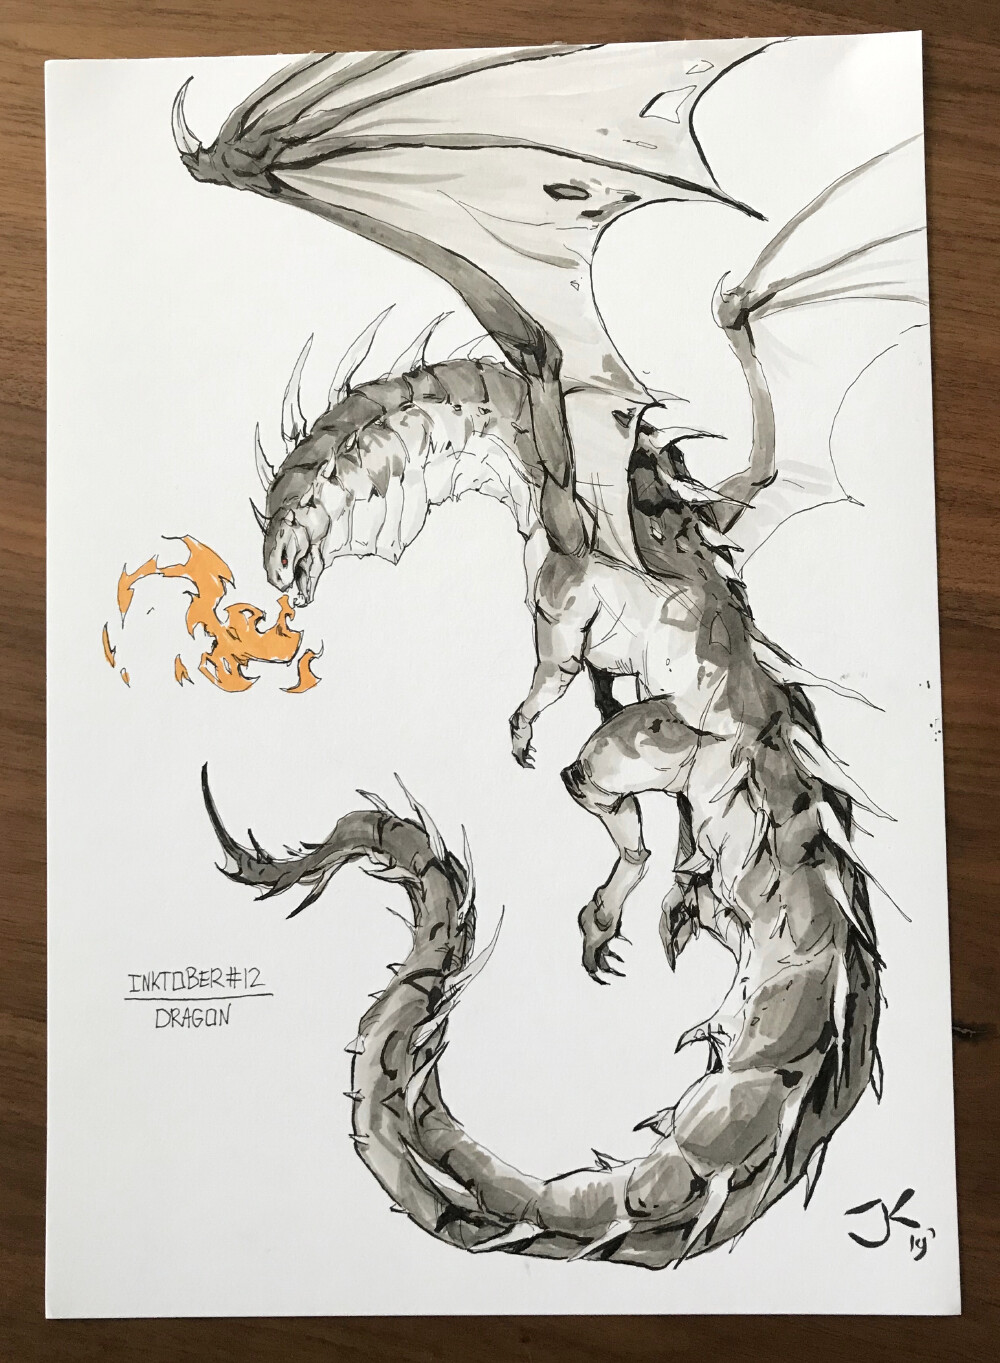 Jordy knoop day12 dragon inktober2019 lr